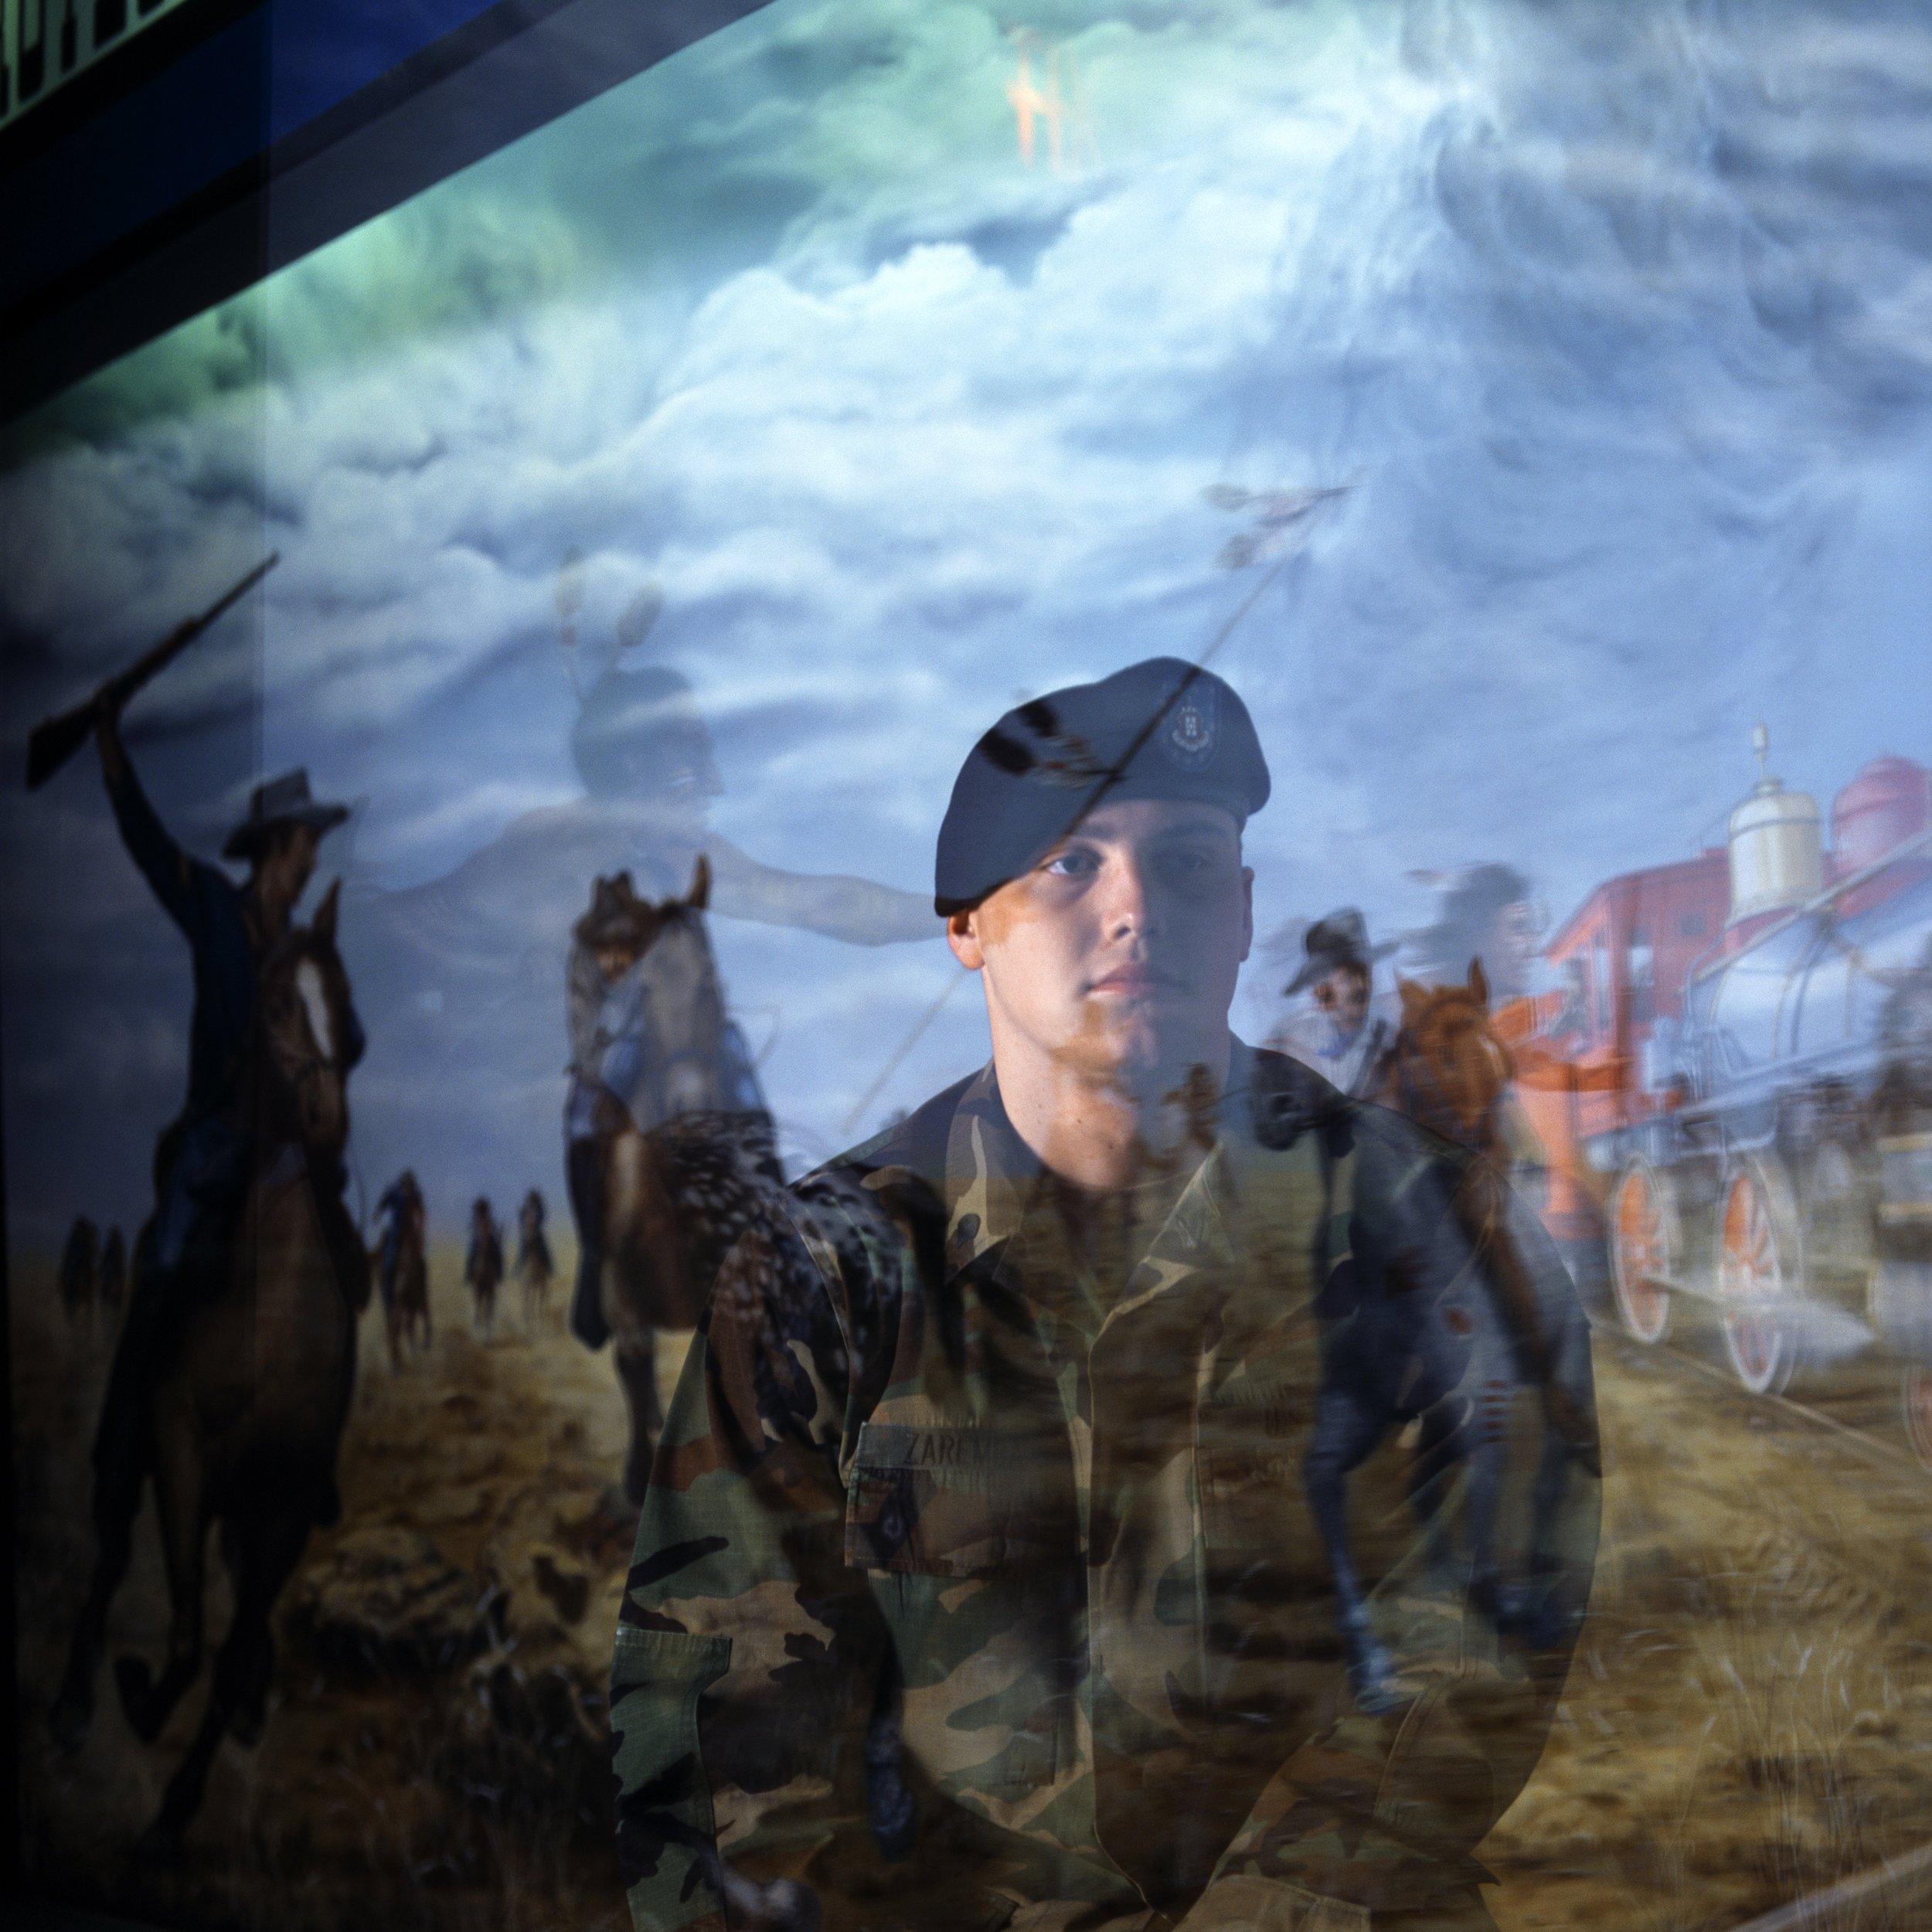 Spc. Adam Zaremba, who lost his leg in combat Iraq, photographed  at Ft. Riley Kansas at the Cavalry Museum on base.   2004